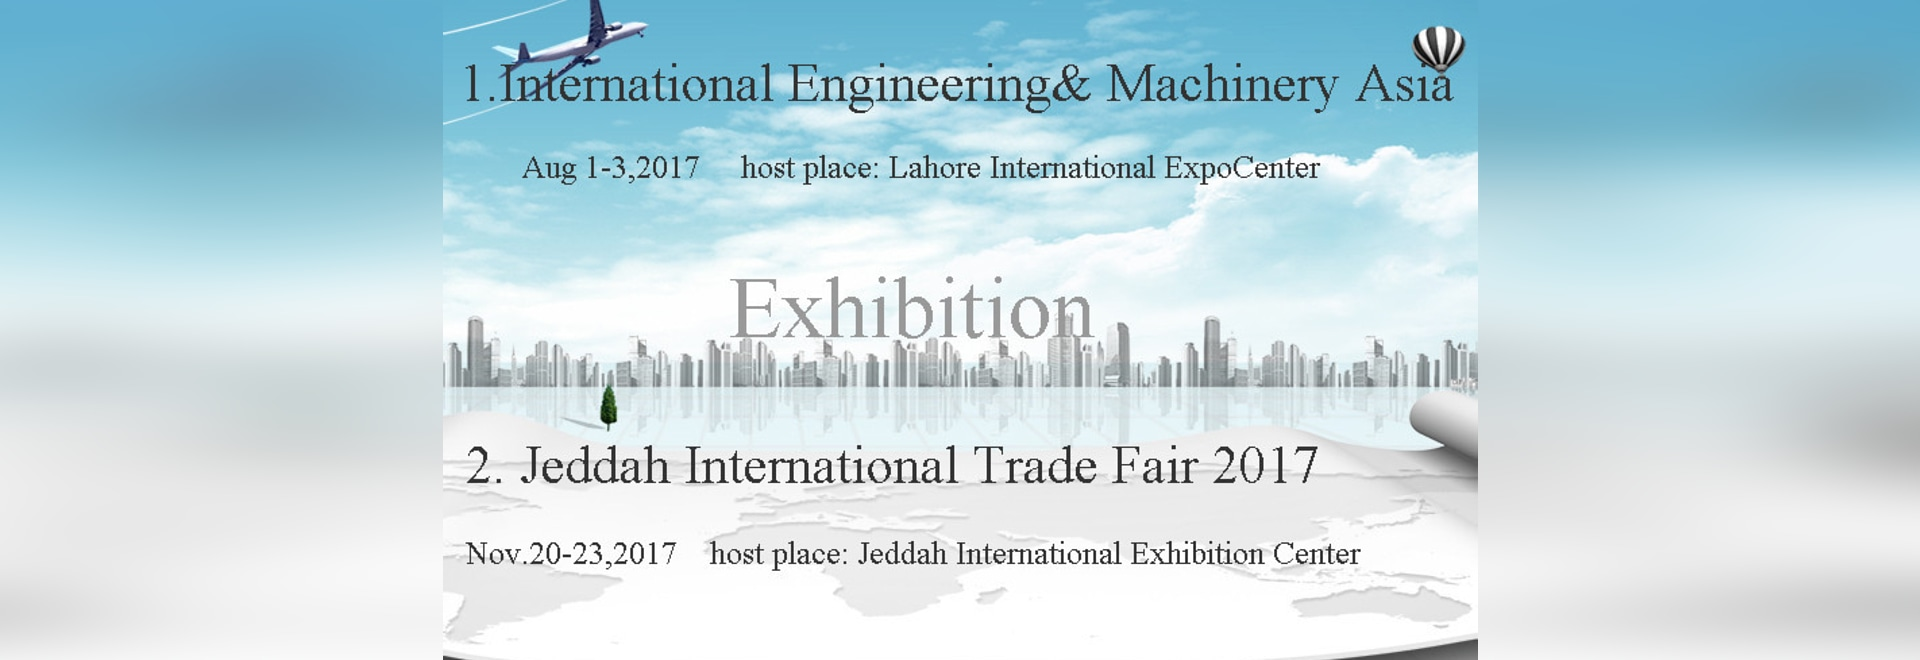 We will organize exhibitions in Brazil, Pakistan, Saudi Arabia